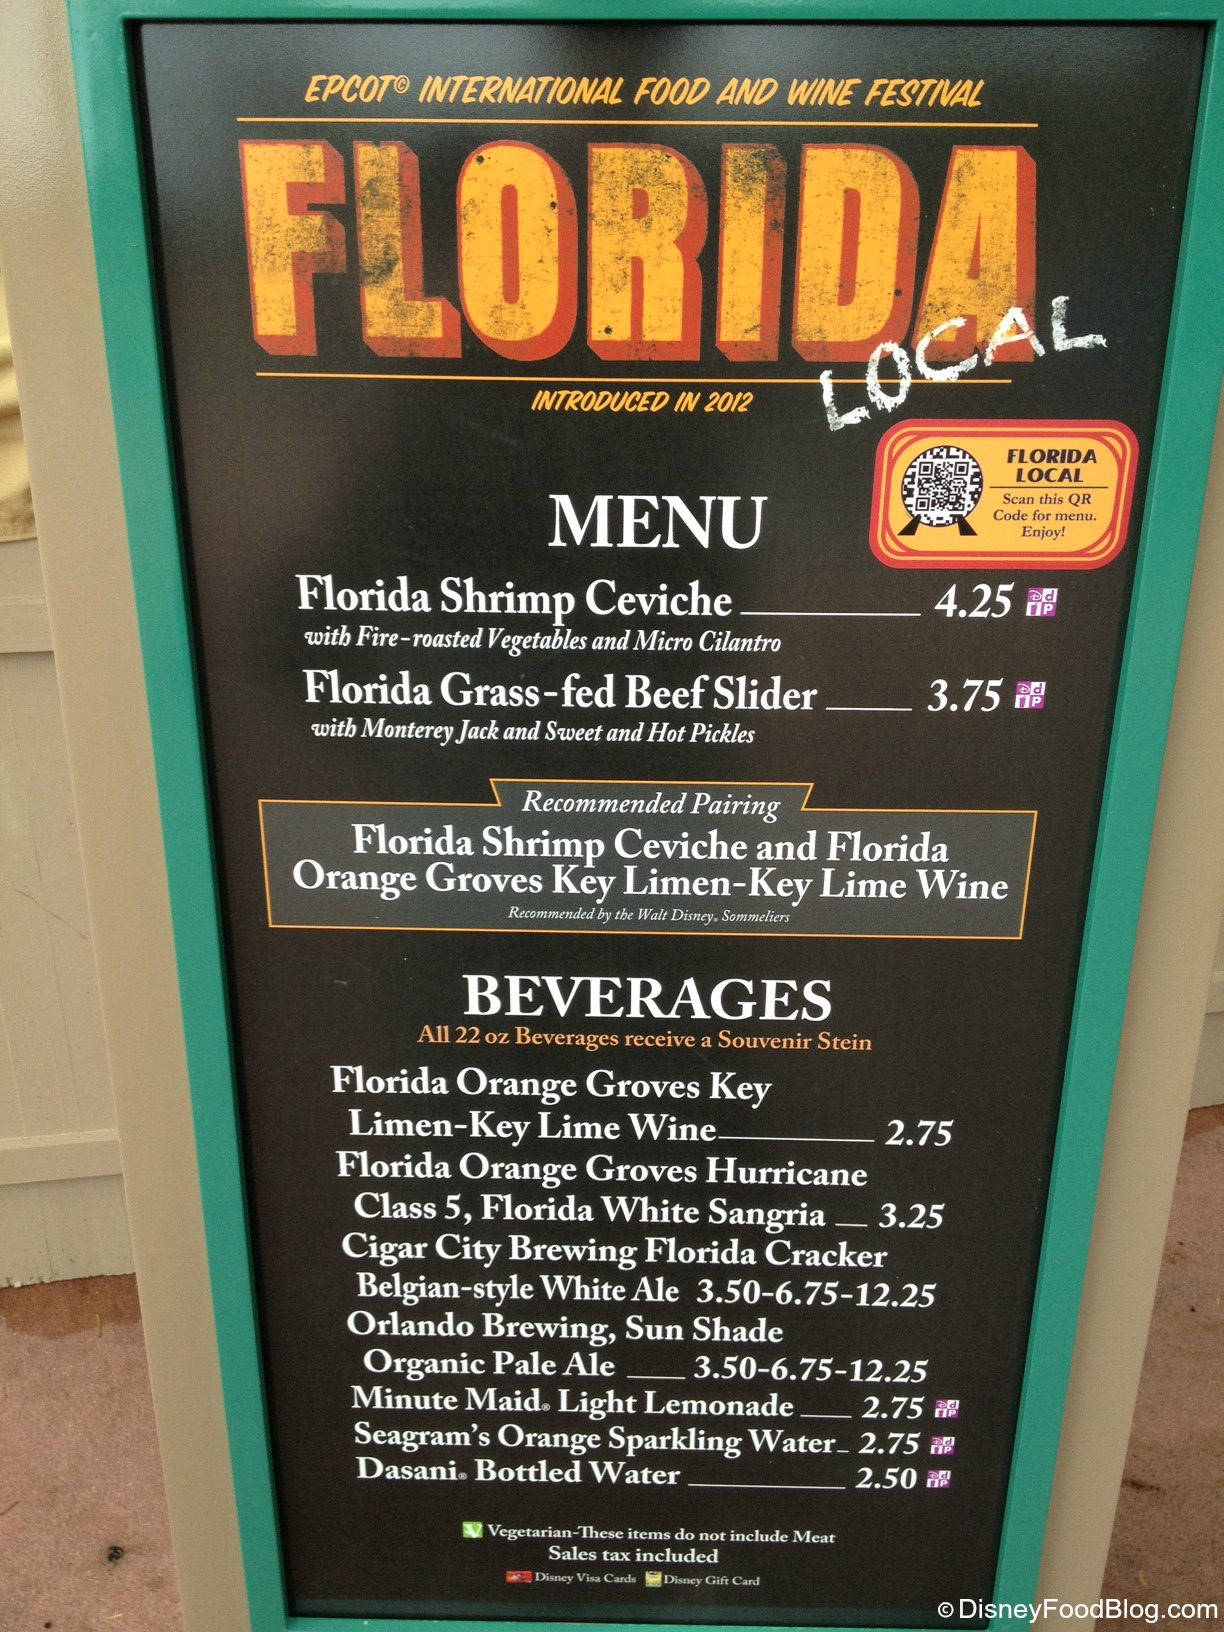 Florida Local: 2013 Epcot Food and Wine Festival